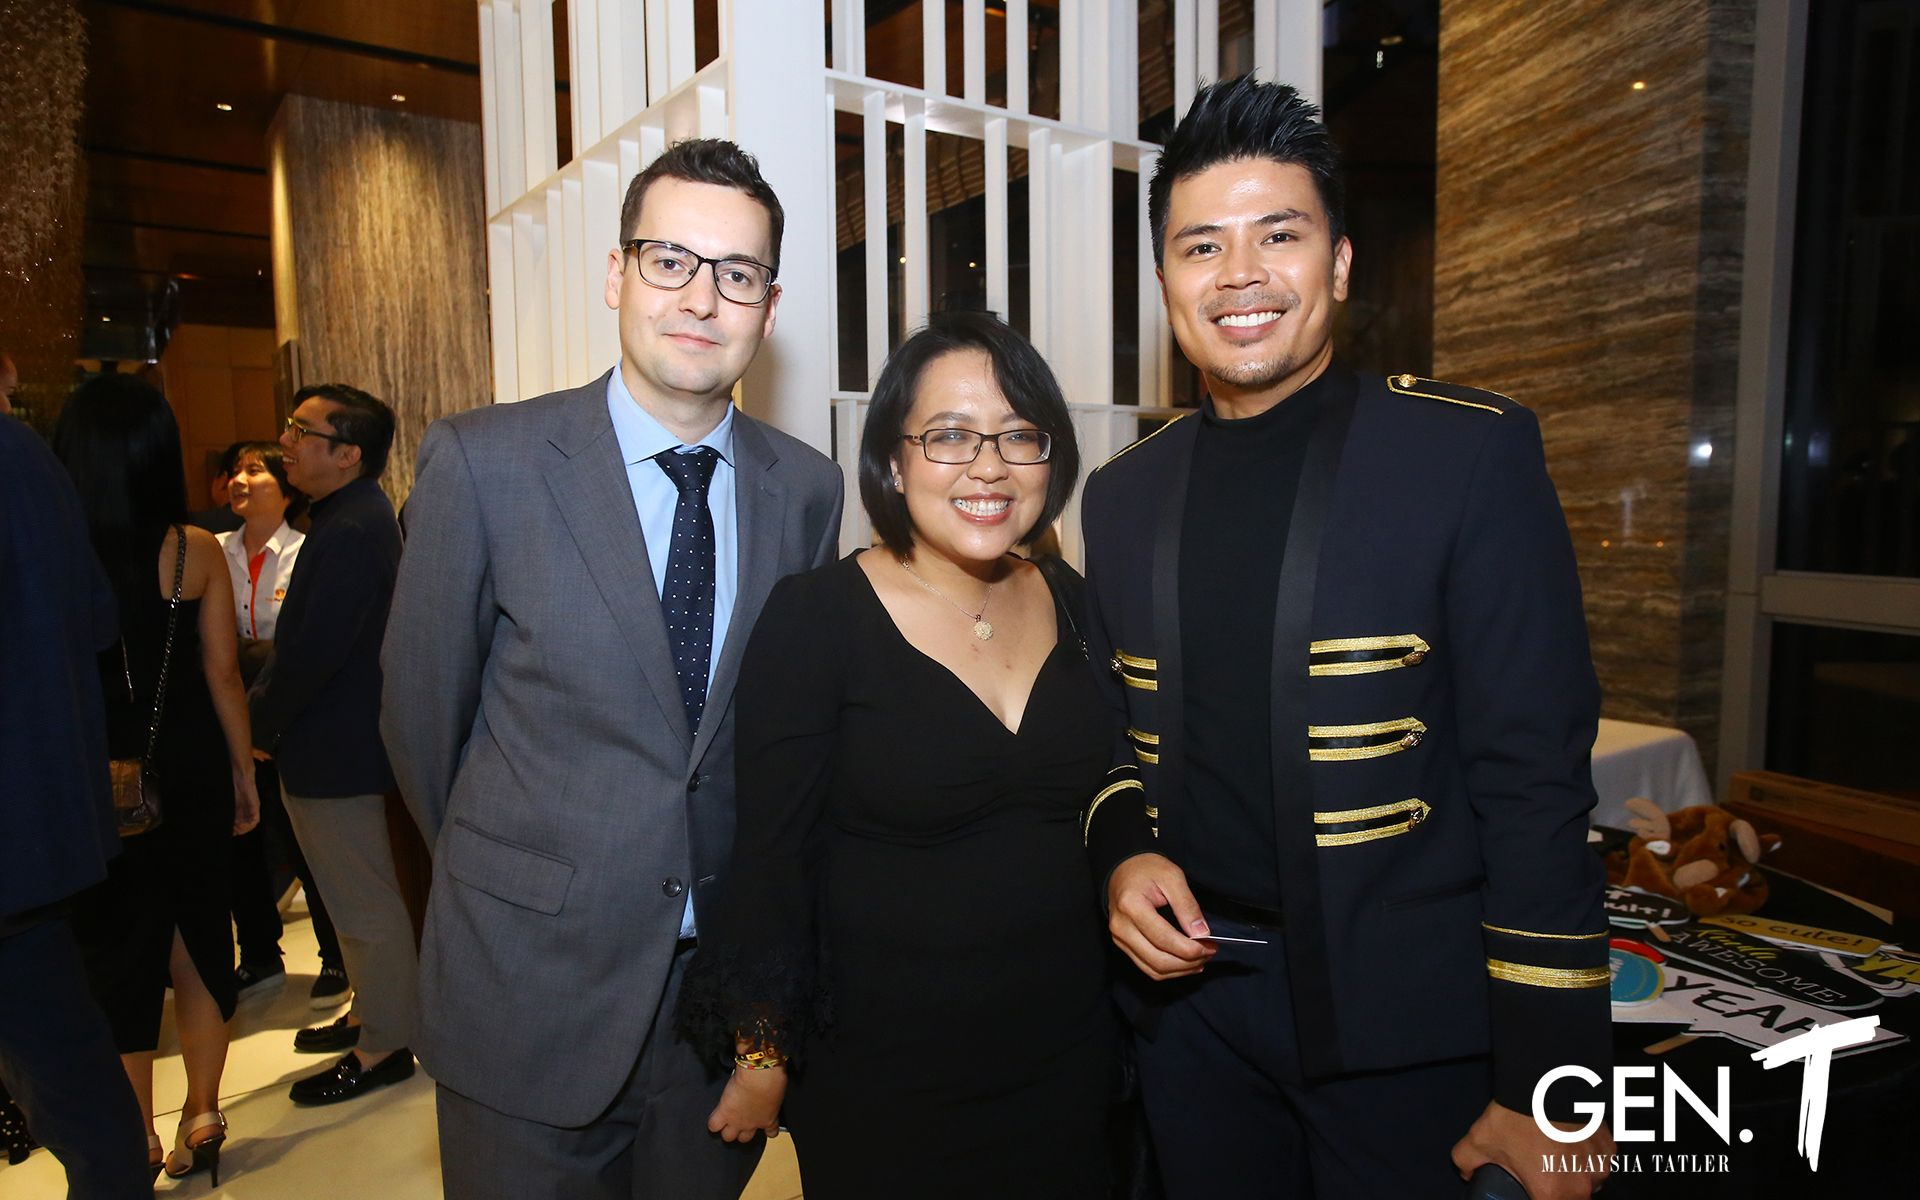 Lee Williamson, Lily Ong and Awal Ashaari